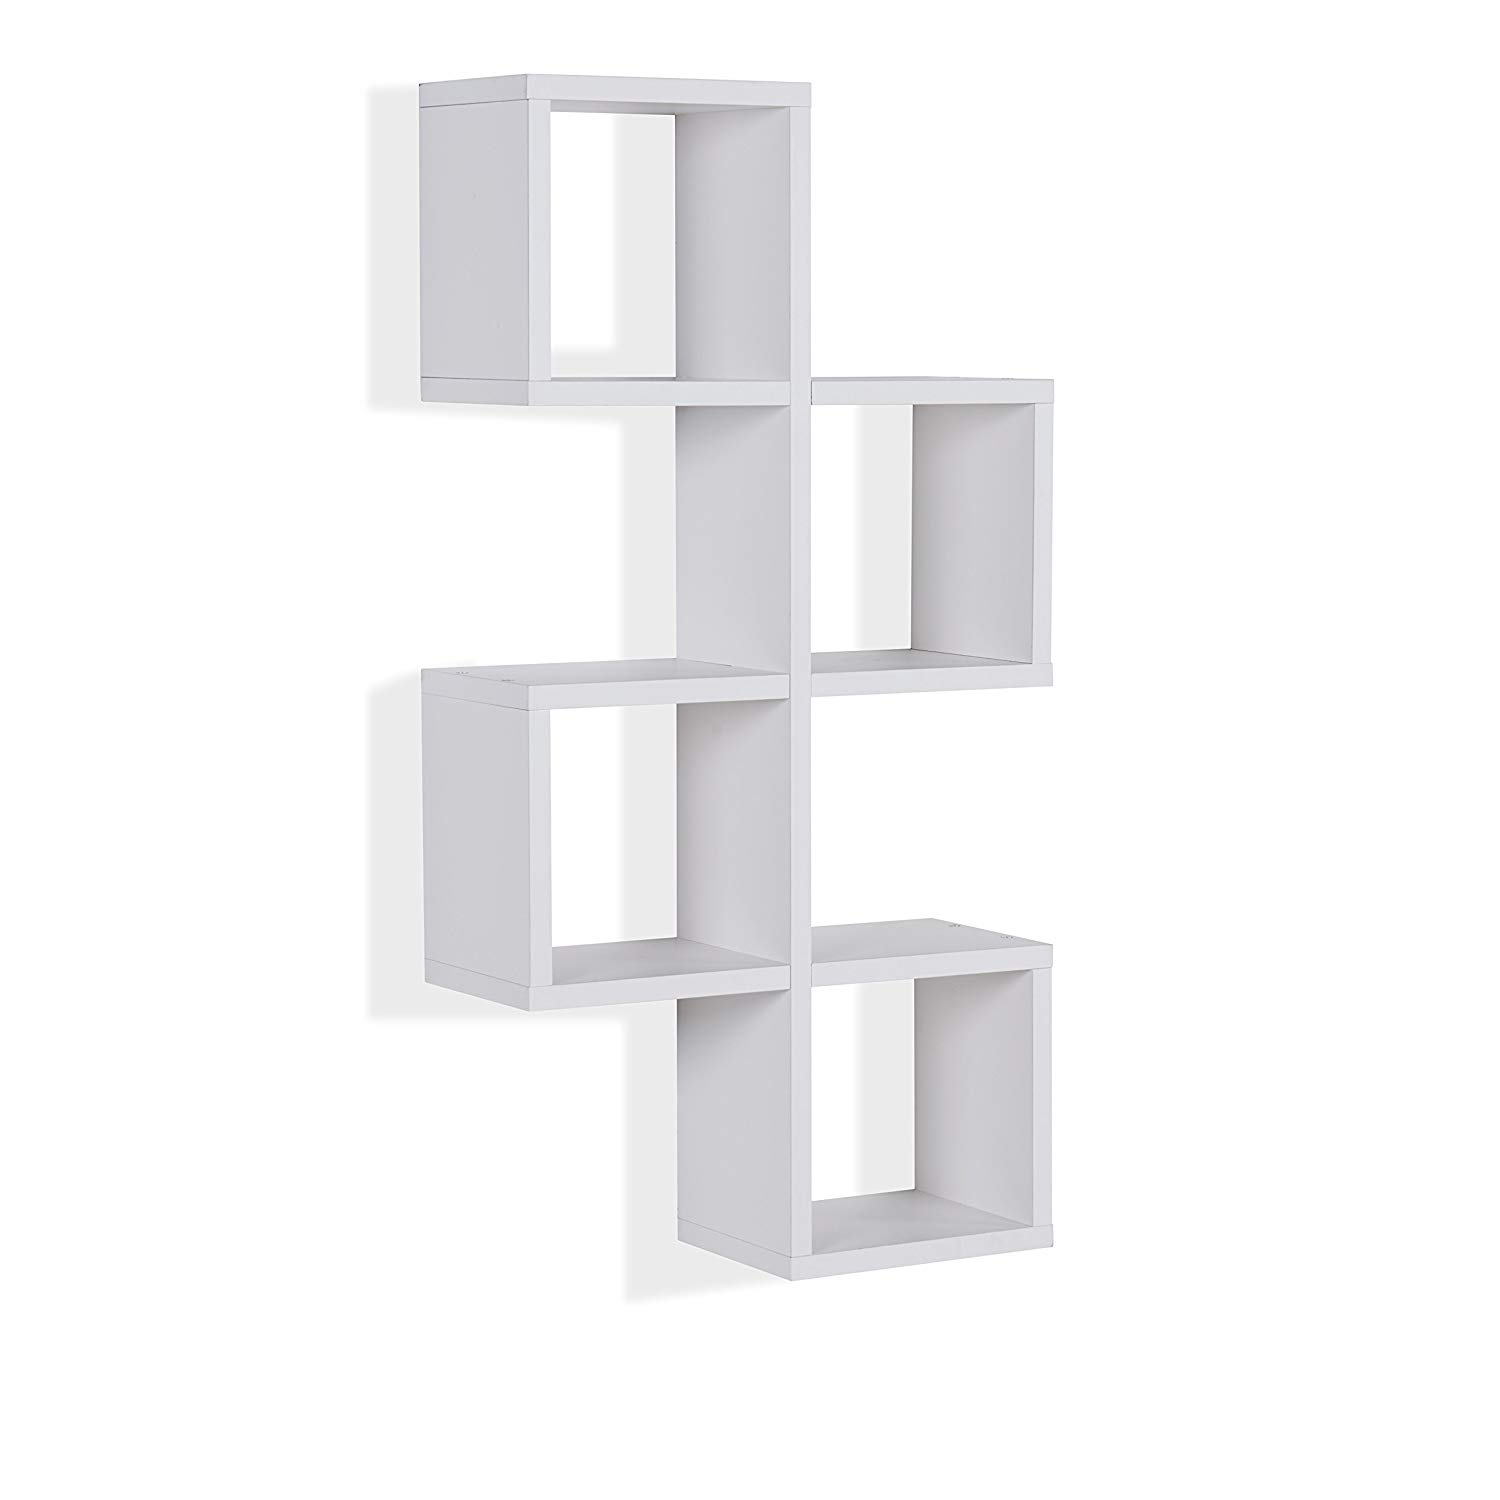 danya decorative floating wall mount cube shelf chessboard shelves white home kitchen metal ture ledge small desk with drawers sky matte black triangle smoked glass corner